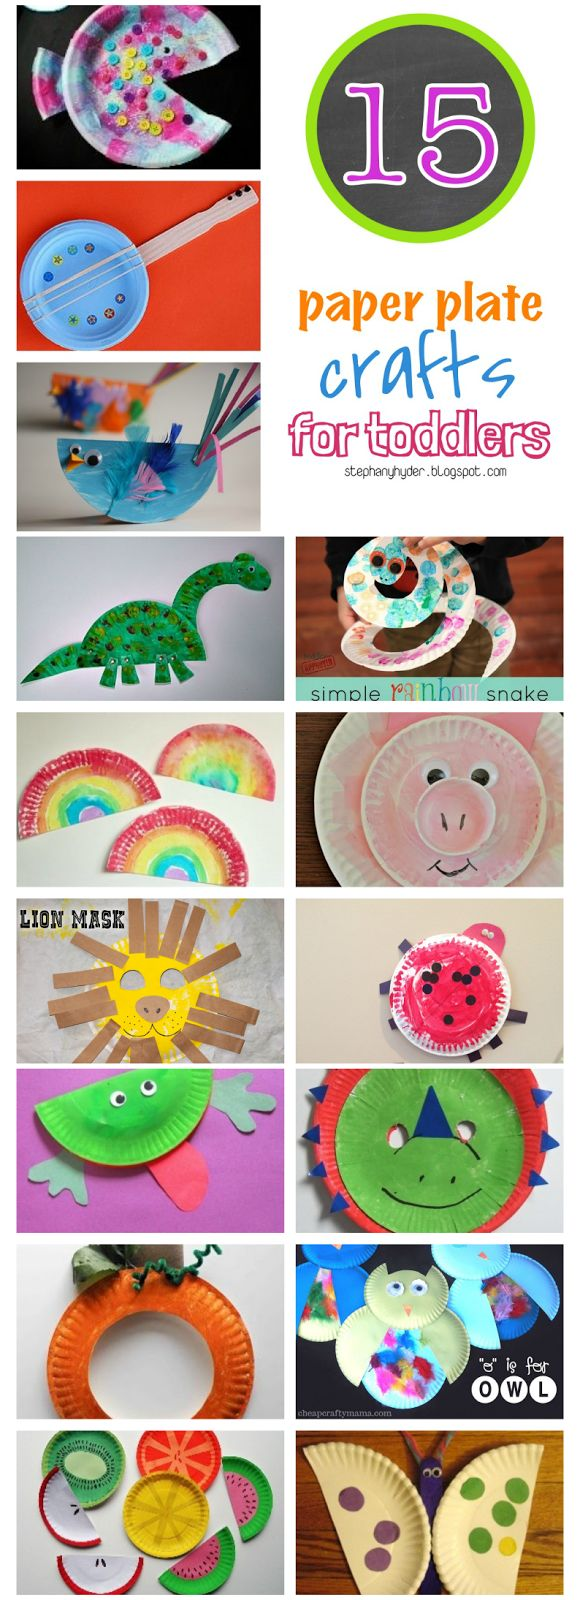 Davenport & Lillian: Paper Plate Crafting--- These are adorable and will work great with my kinders